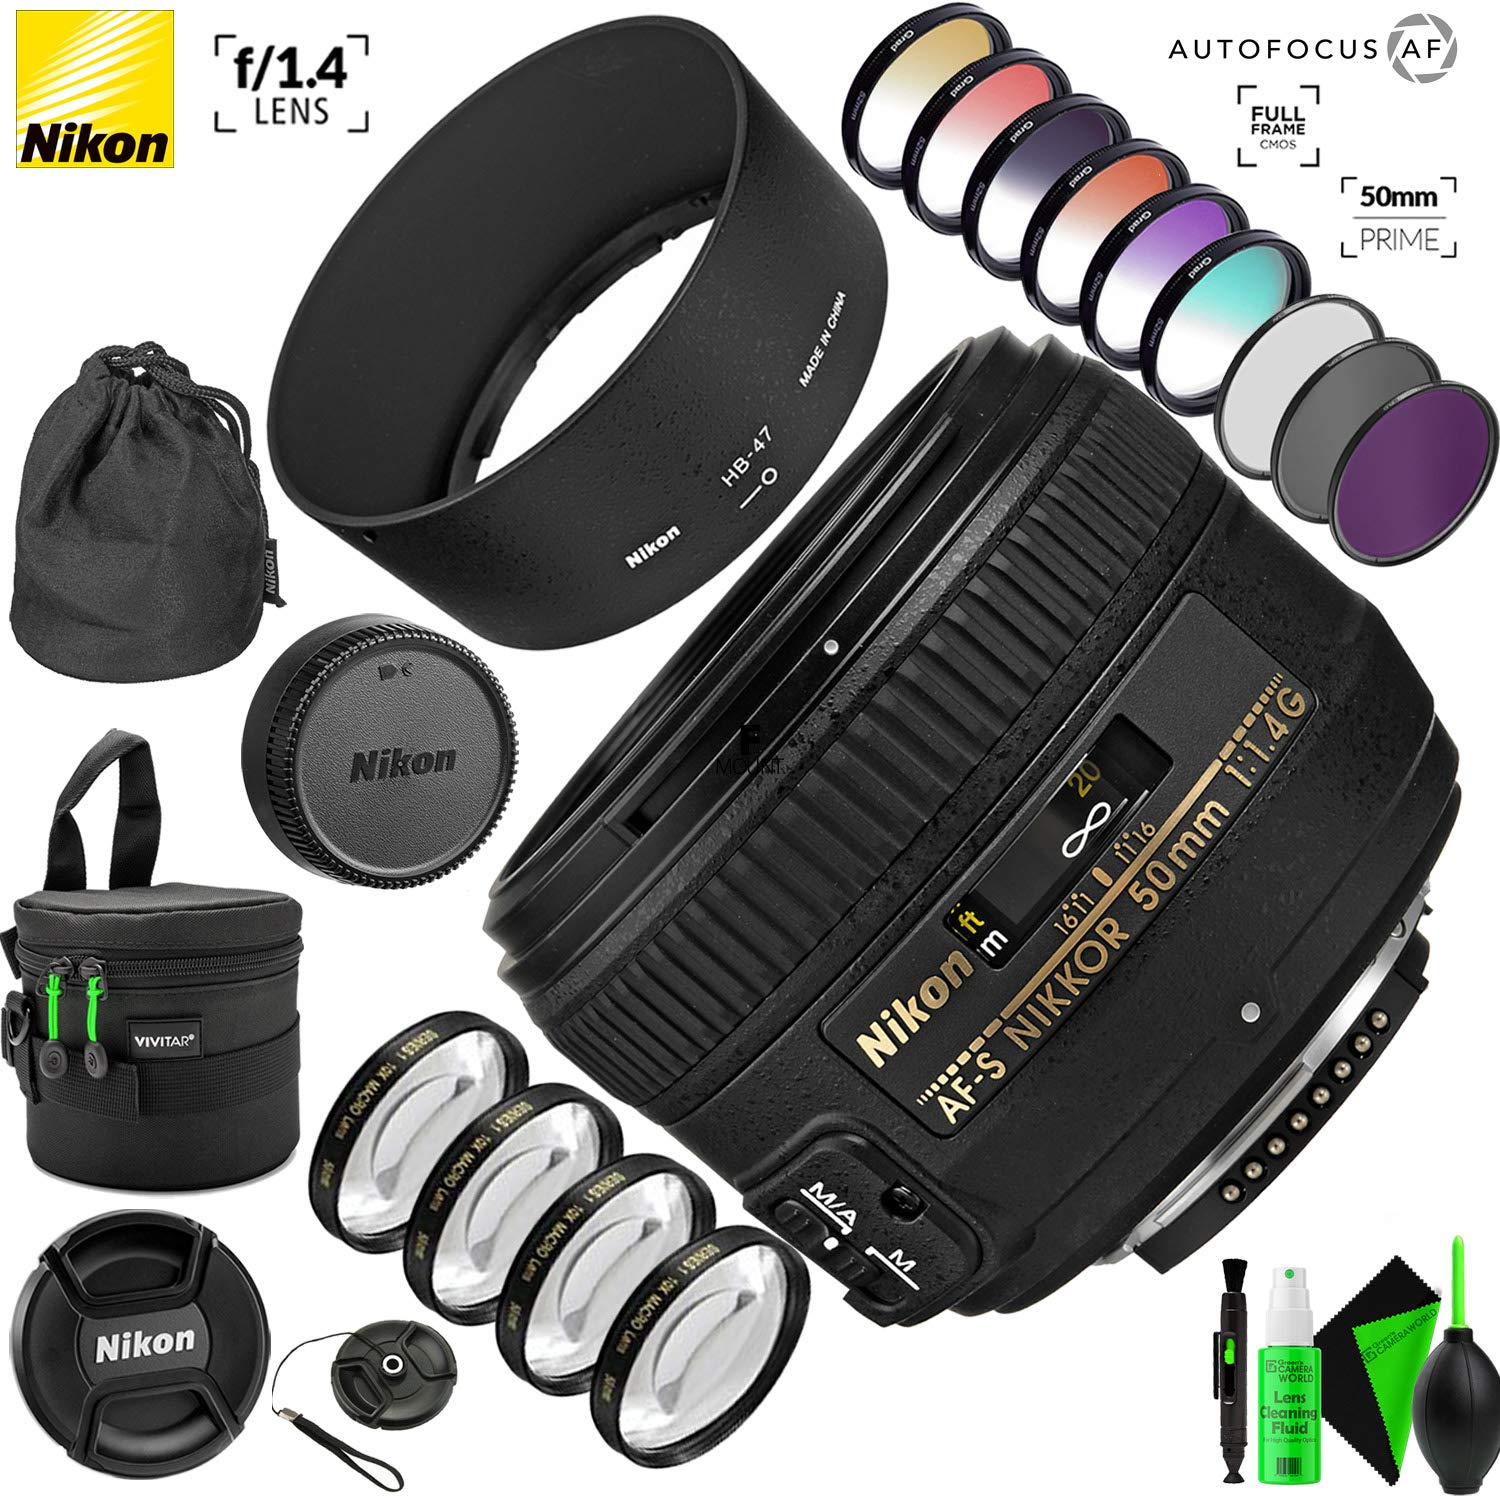 Nikon AF-S NIKKOR 50mm f/1.4G Lens with Creative Filter Kit and Pro Cleaning Accessories by Nikon